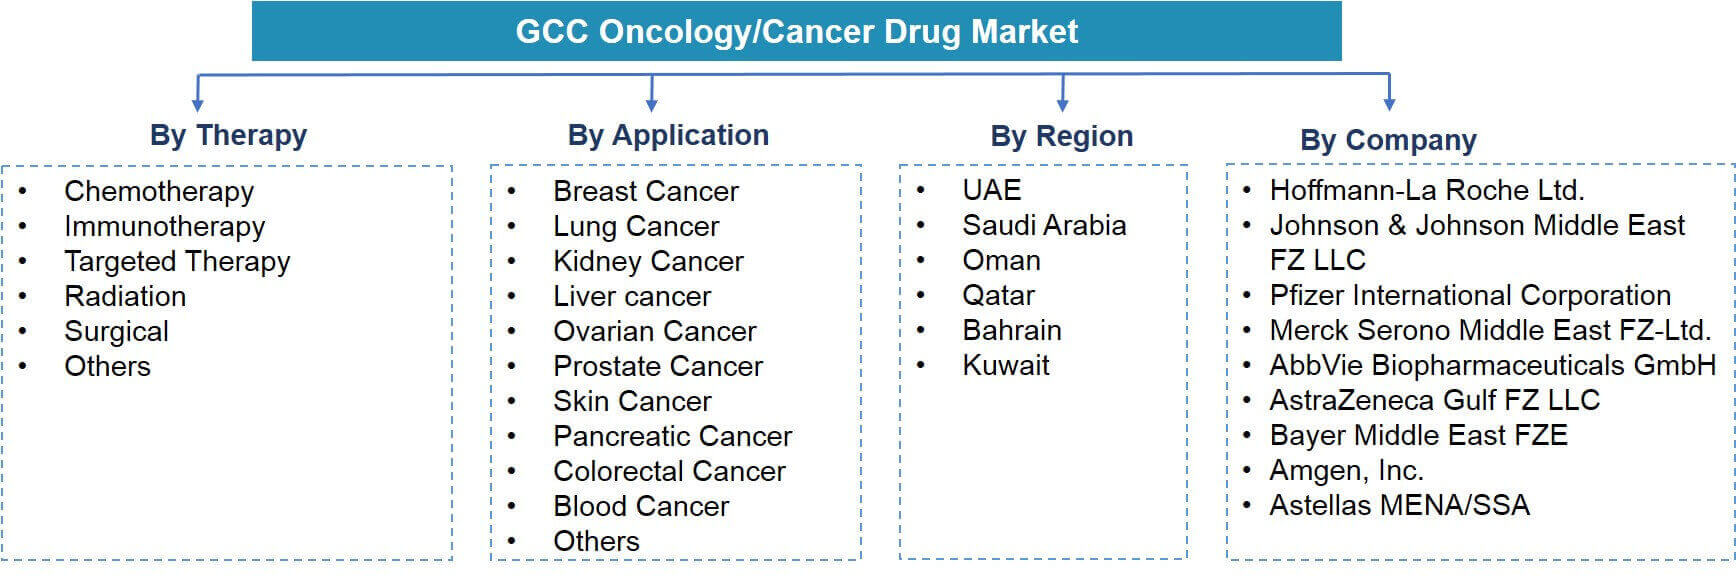 GCC Oncology/Cancer Drugs Market Segmentation